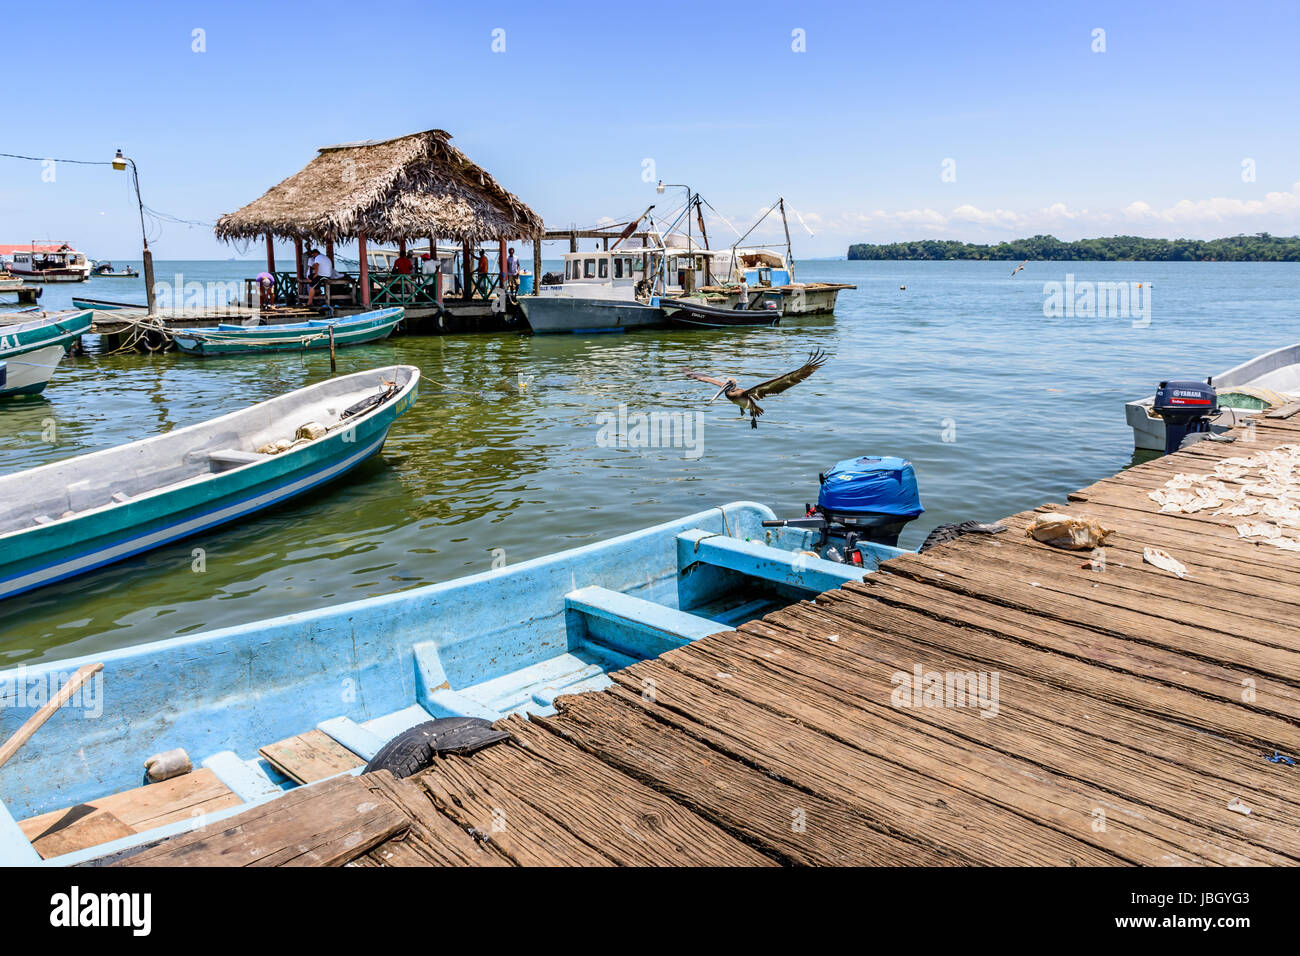 Livingston, Guatemala - August 31, 2016: Boats moored by dock in Caribbean town of Livingston - Stock Image